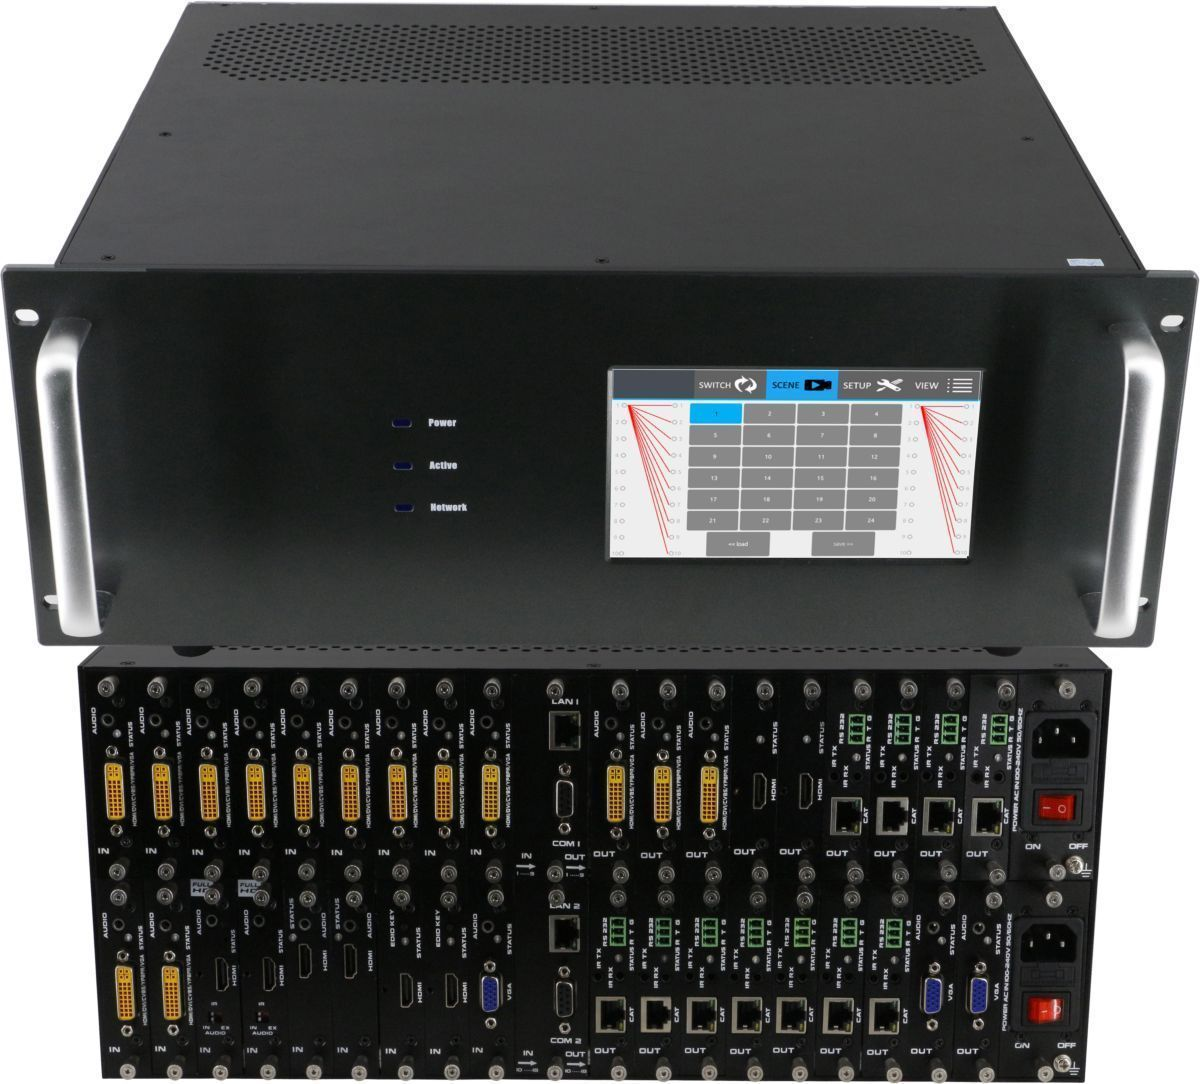 4K 12x10 HDMI Matrix Switcher with Color Touchscreen